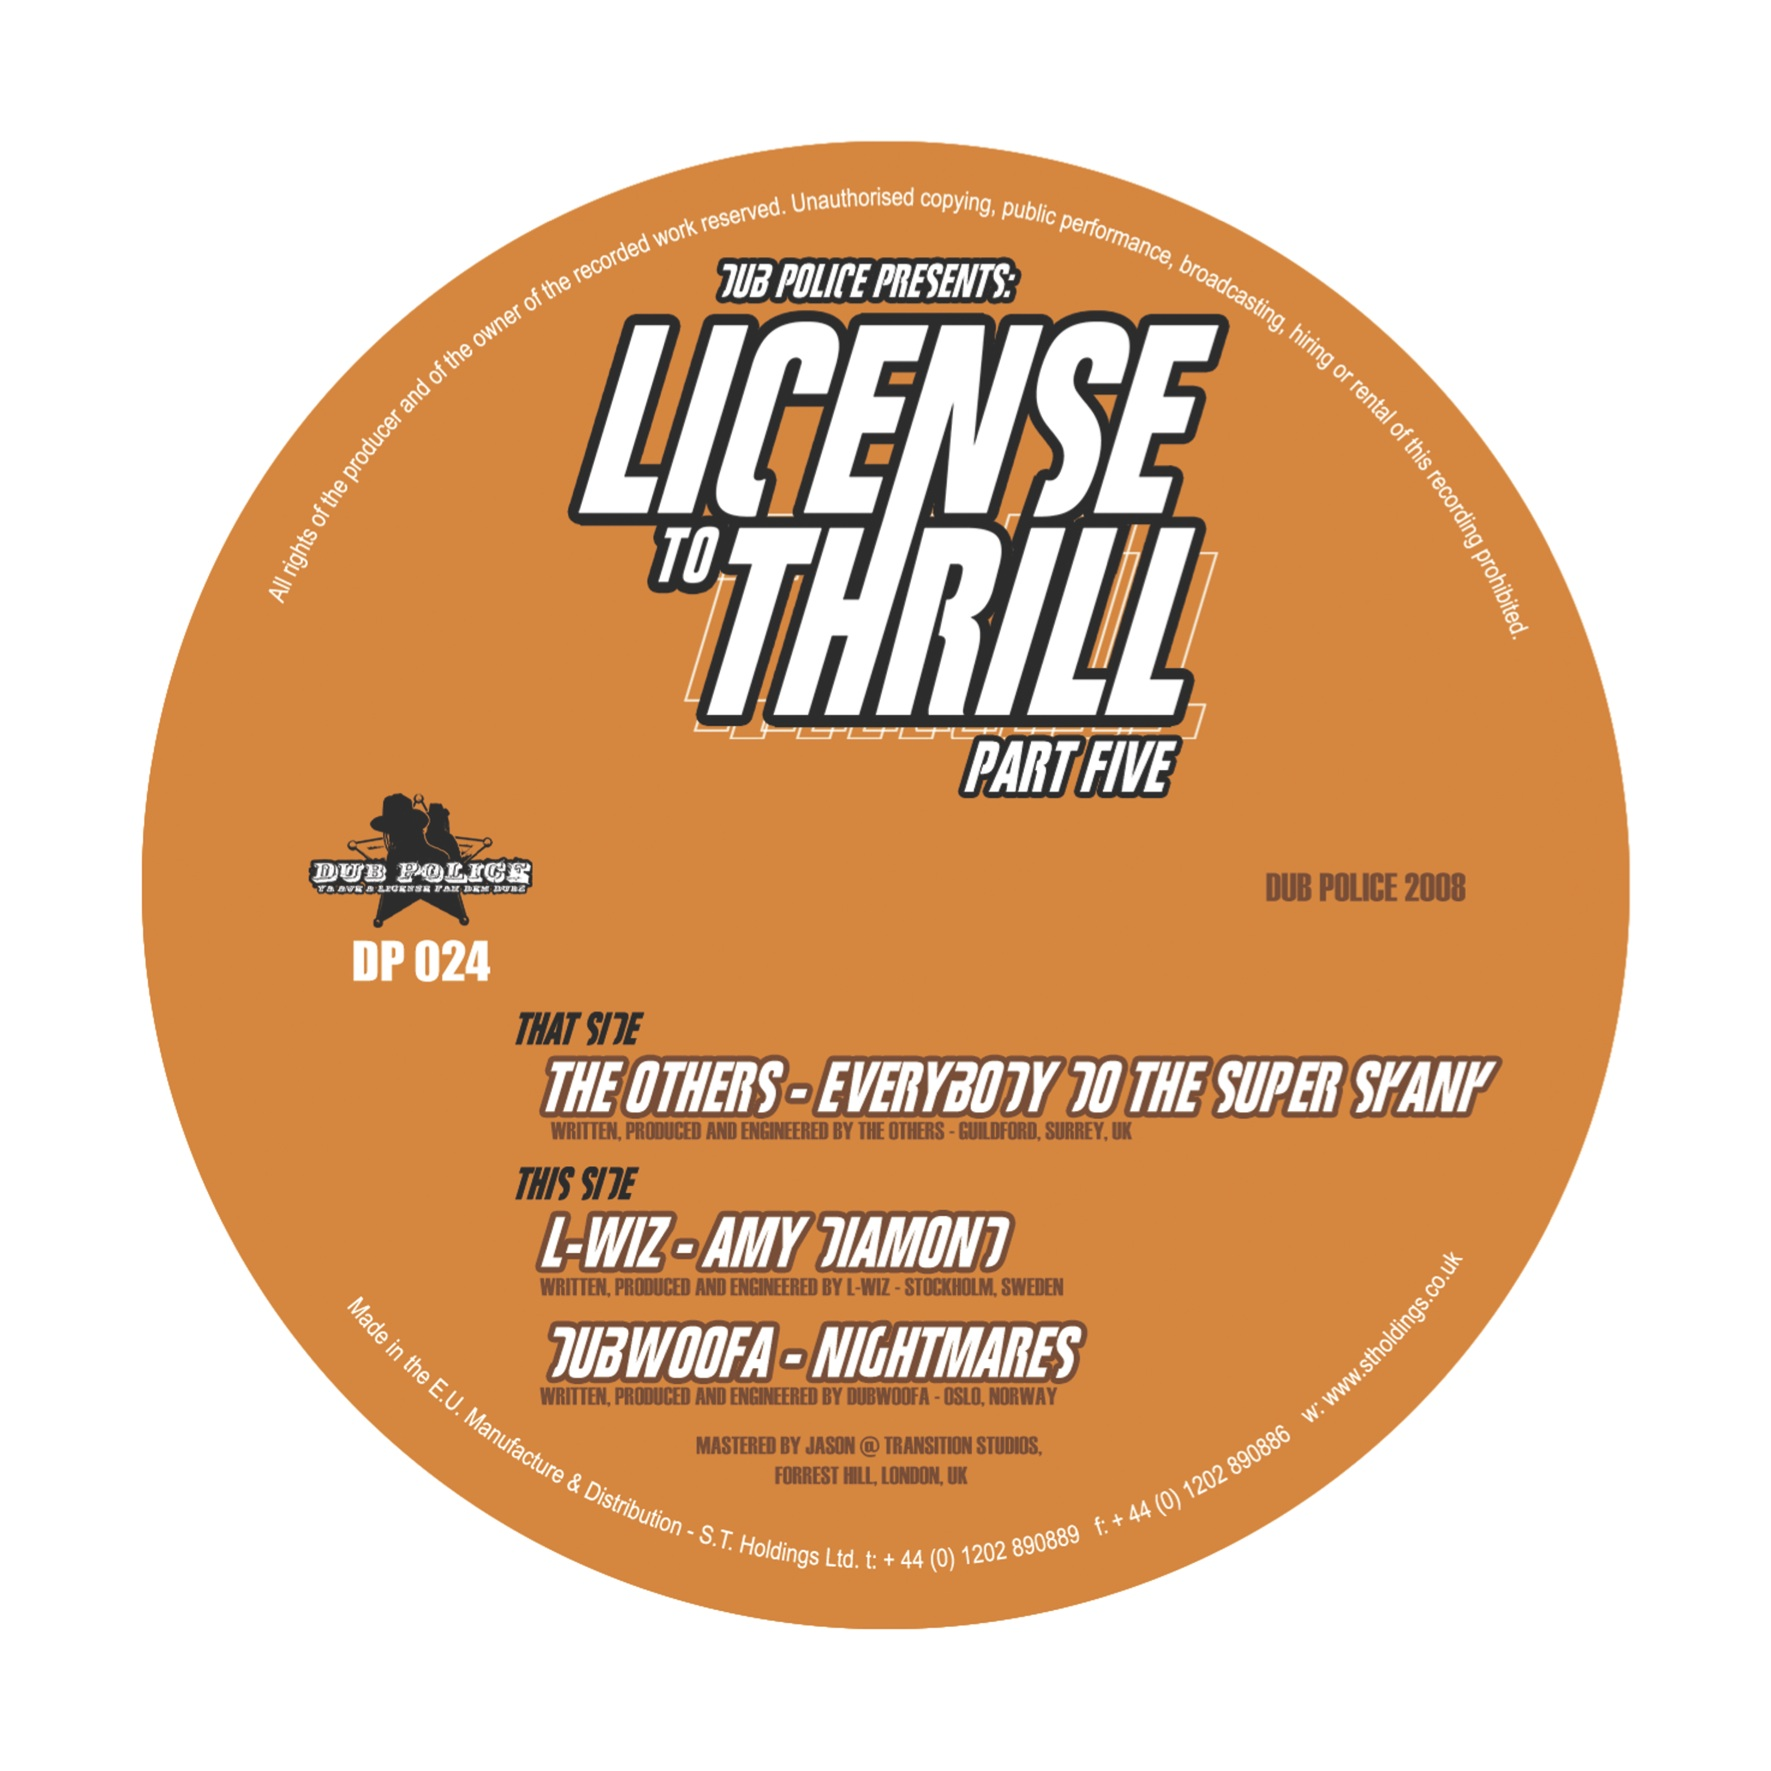 DP024: LICENSE TO THRILL PT. 5